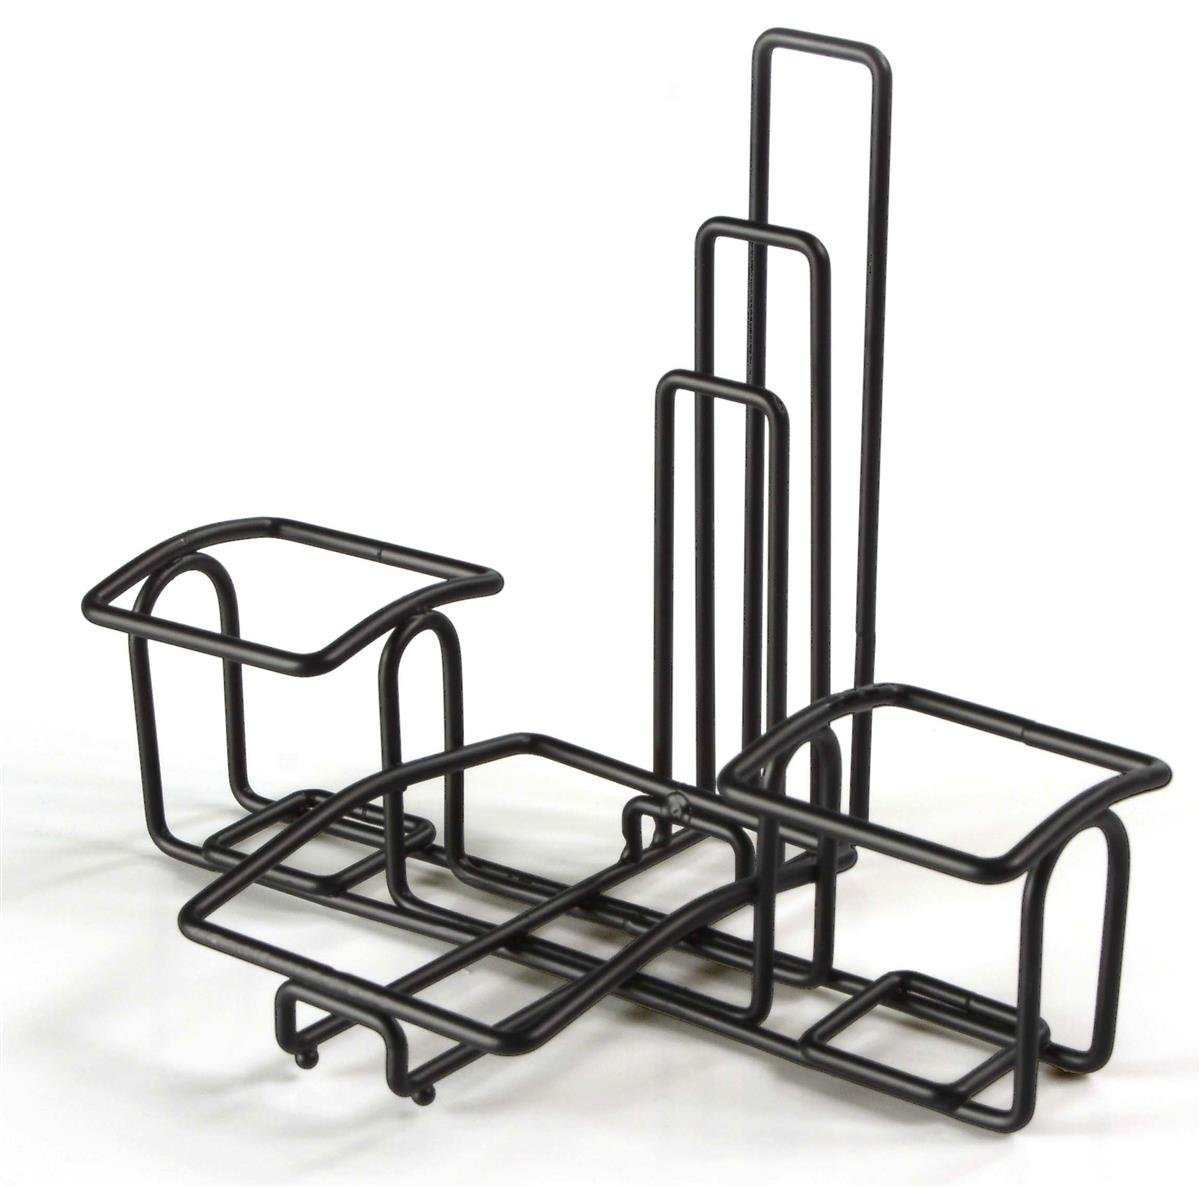 Condiment Caddy Stands with Menu Holders, Wire Organizers for Condiments, Steel (Black) - Set of 10